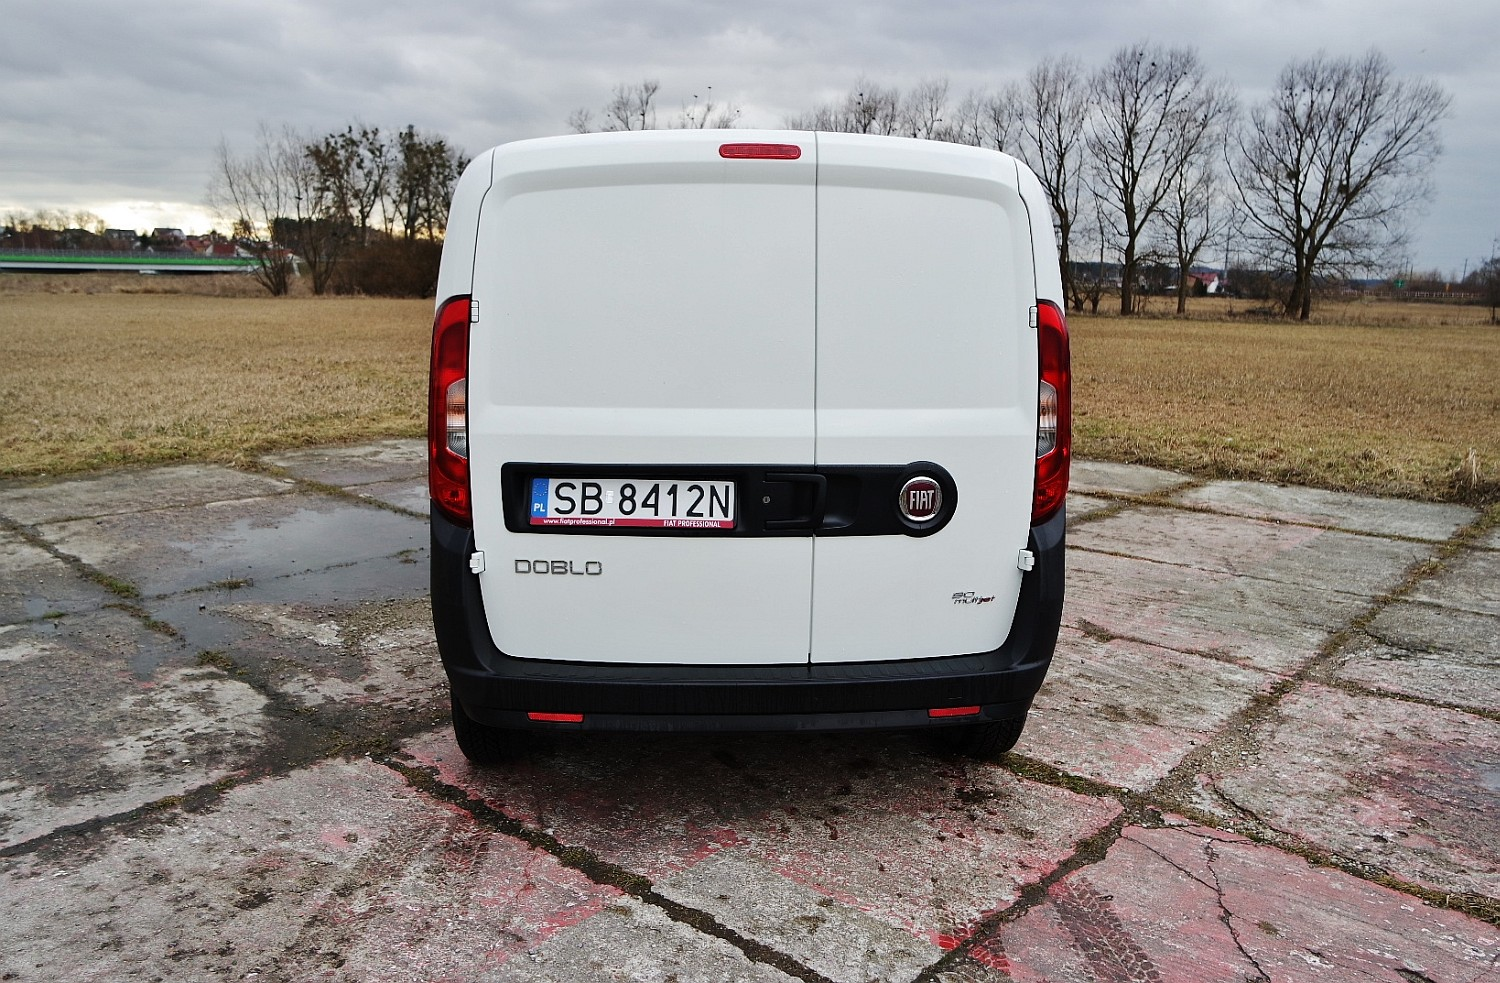 fiat doblo cargo 1 3 multijet na roboczo namasce. Black Bedroom Furniture Sets. Home Design Ideas